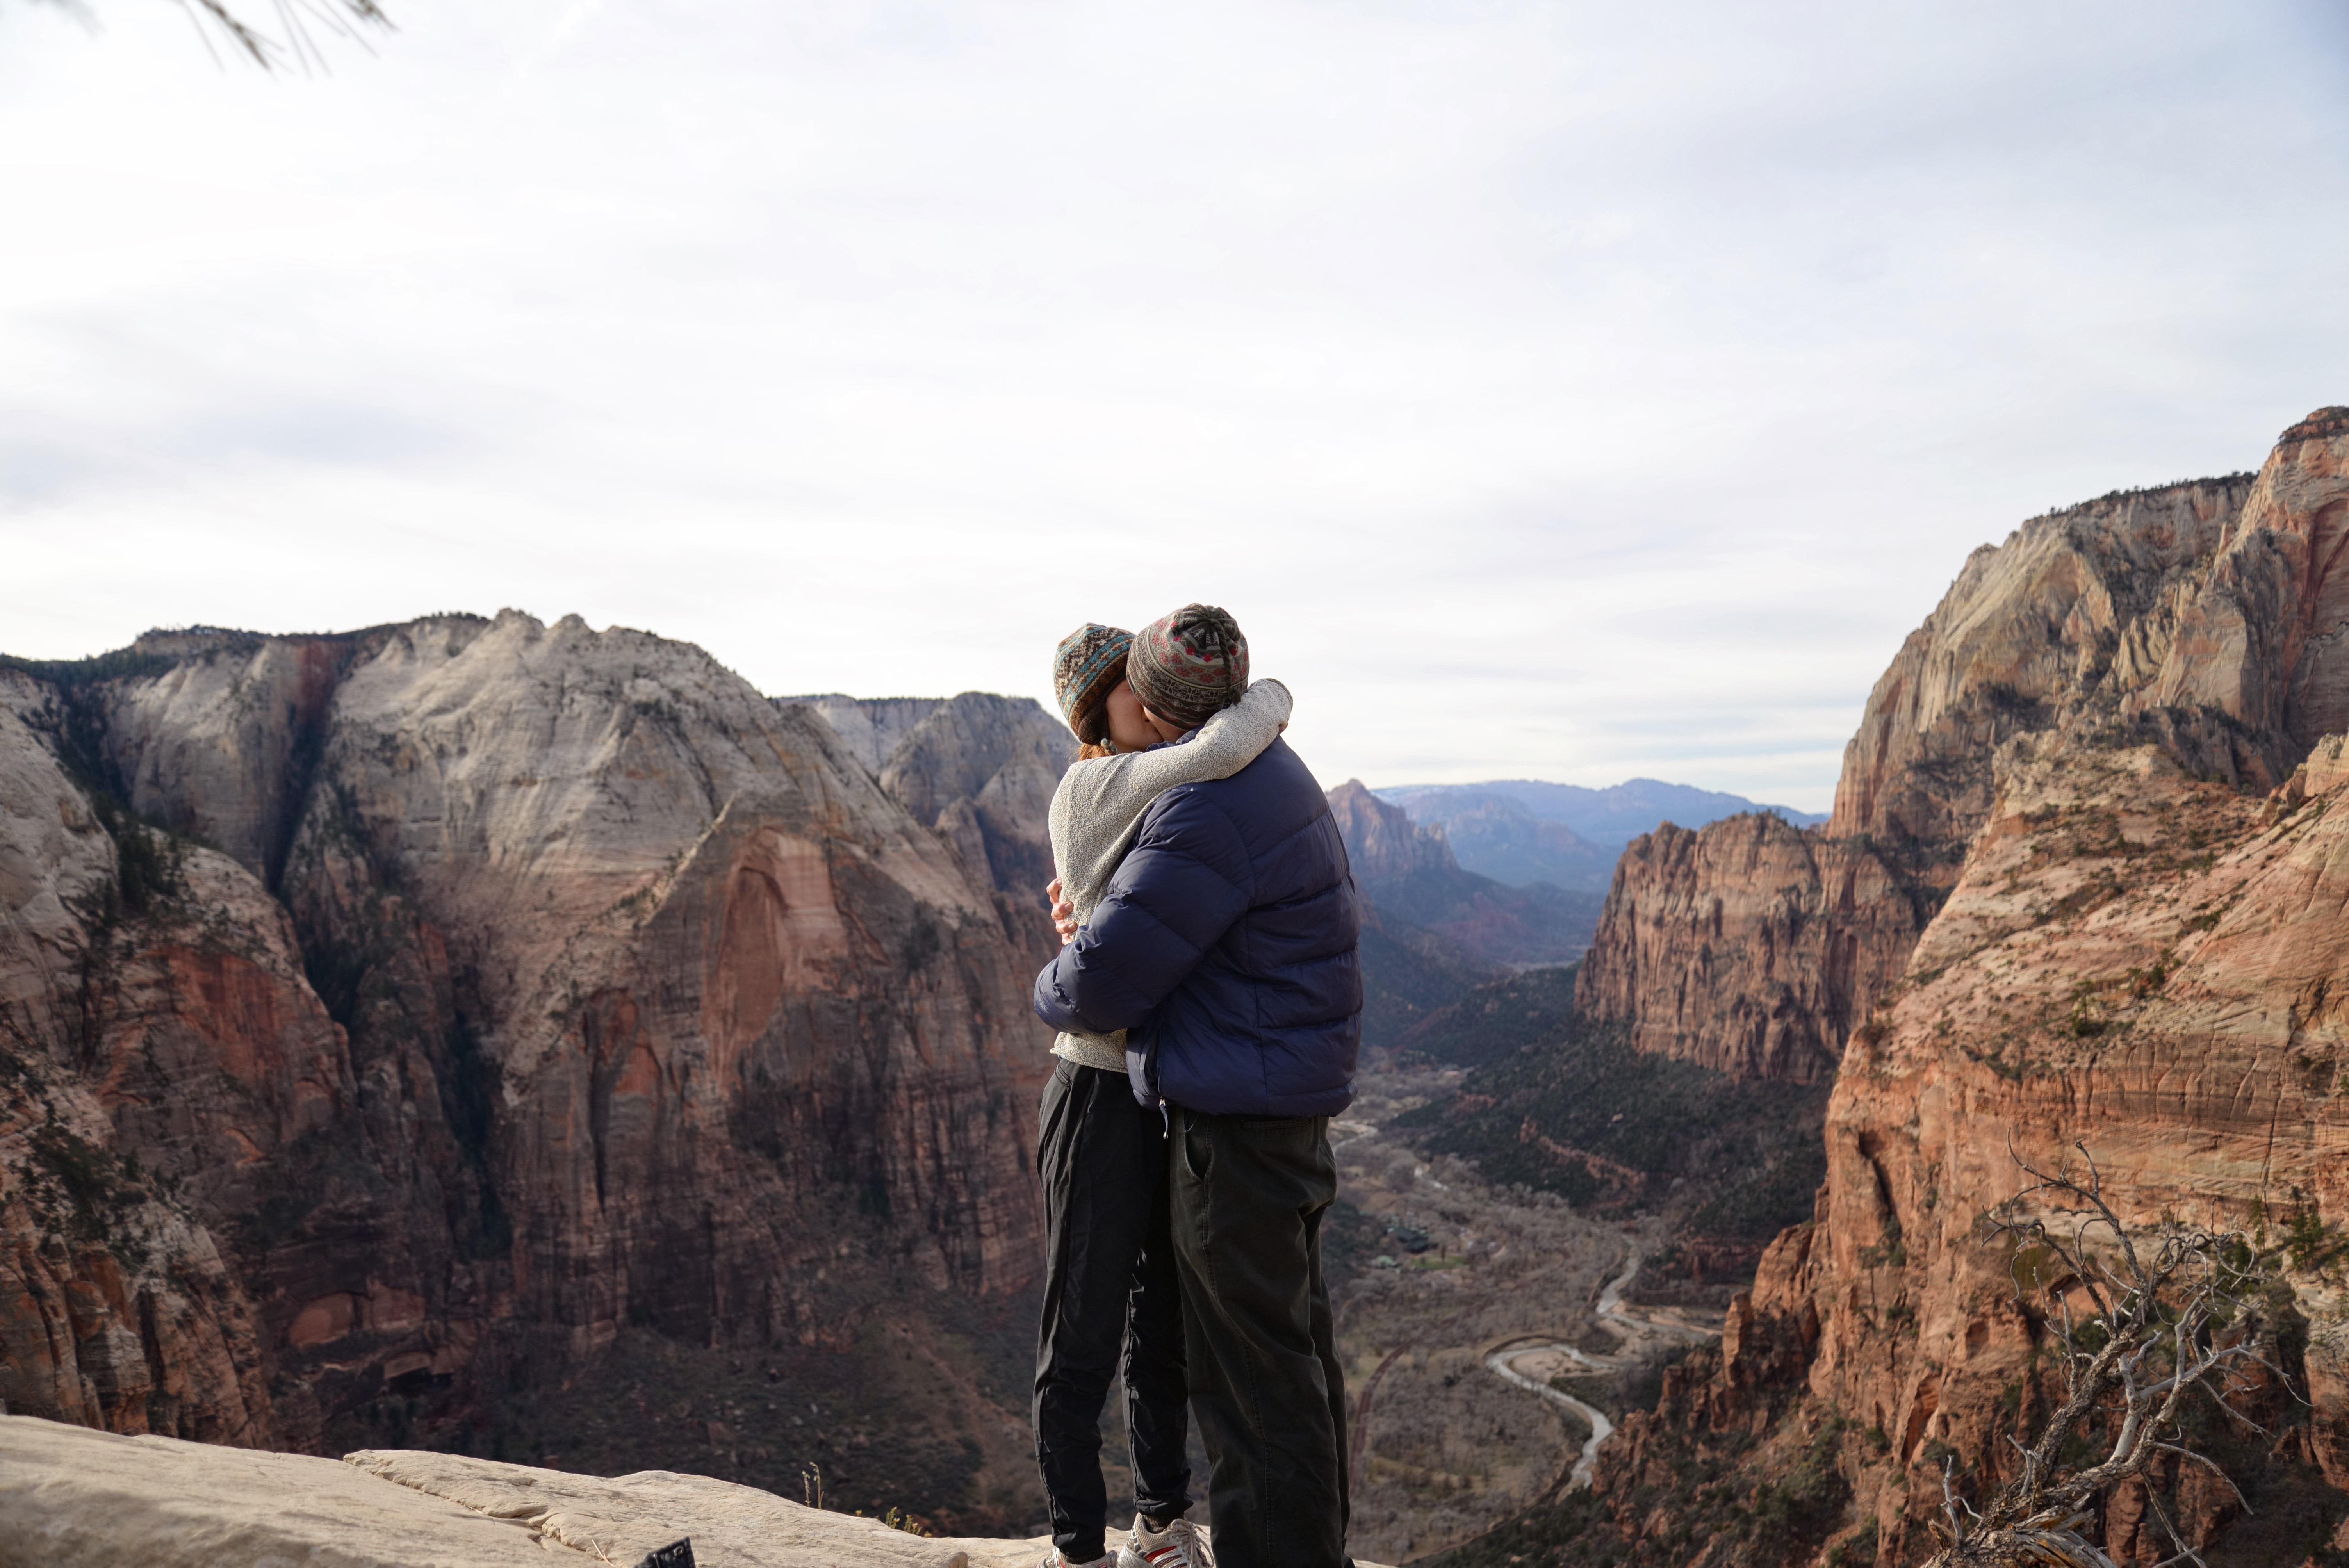 Image 1 of Zion National Park Proposal | Haley and Luke